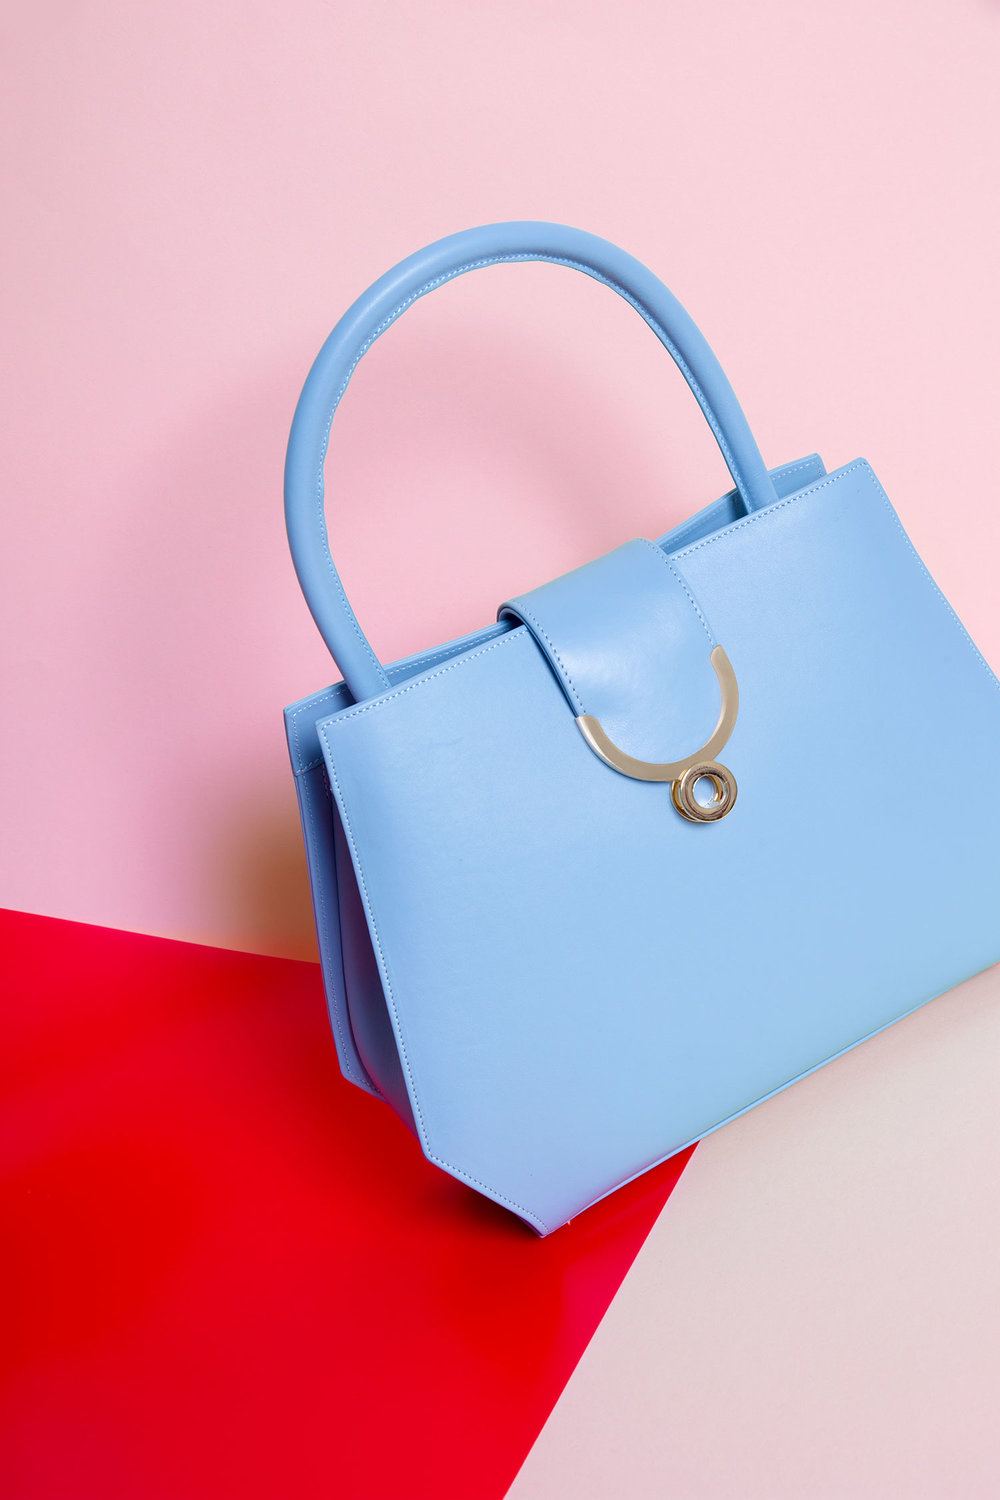 web-11-powder-blue-designer-handbag.jpg